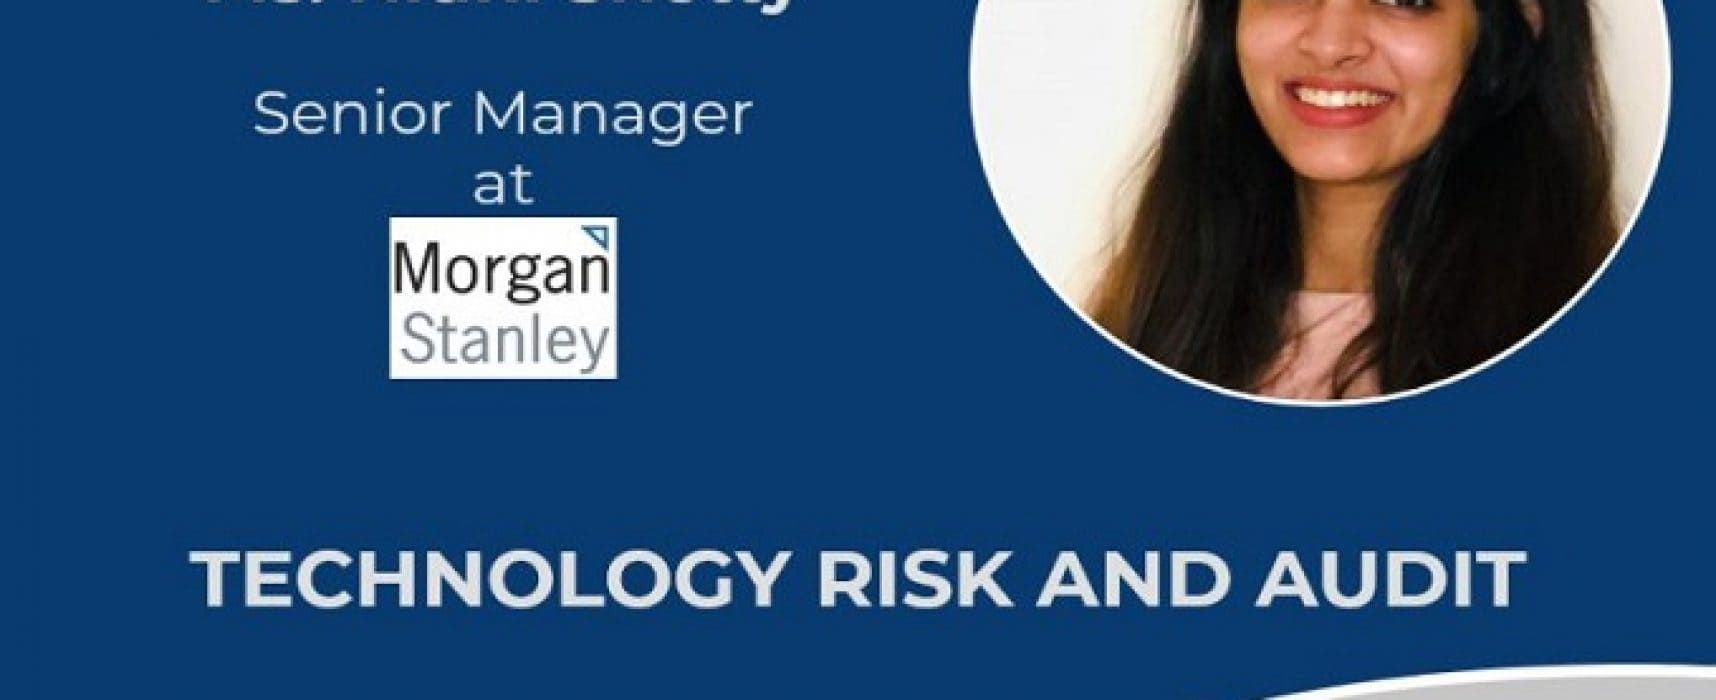 Technology Risk and Audit